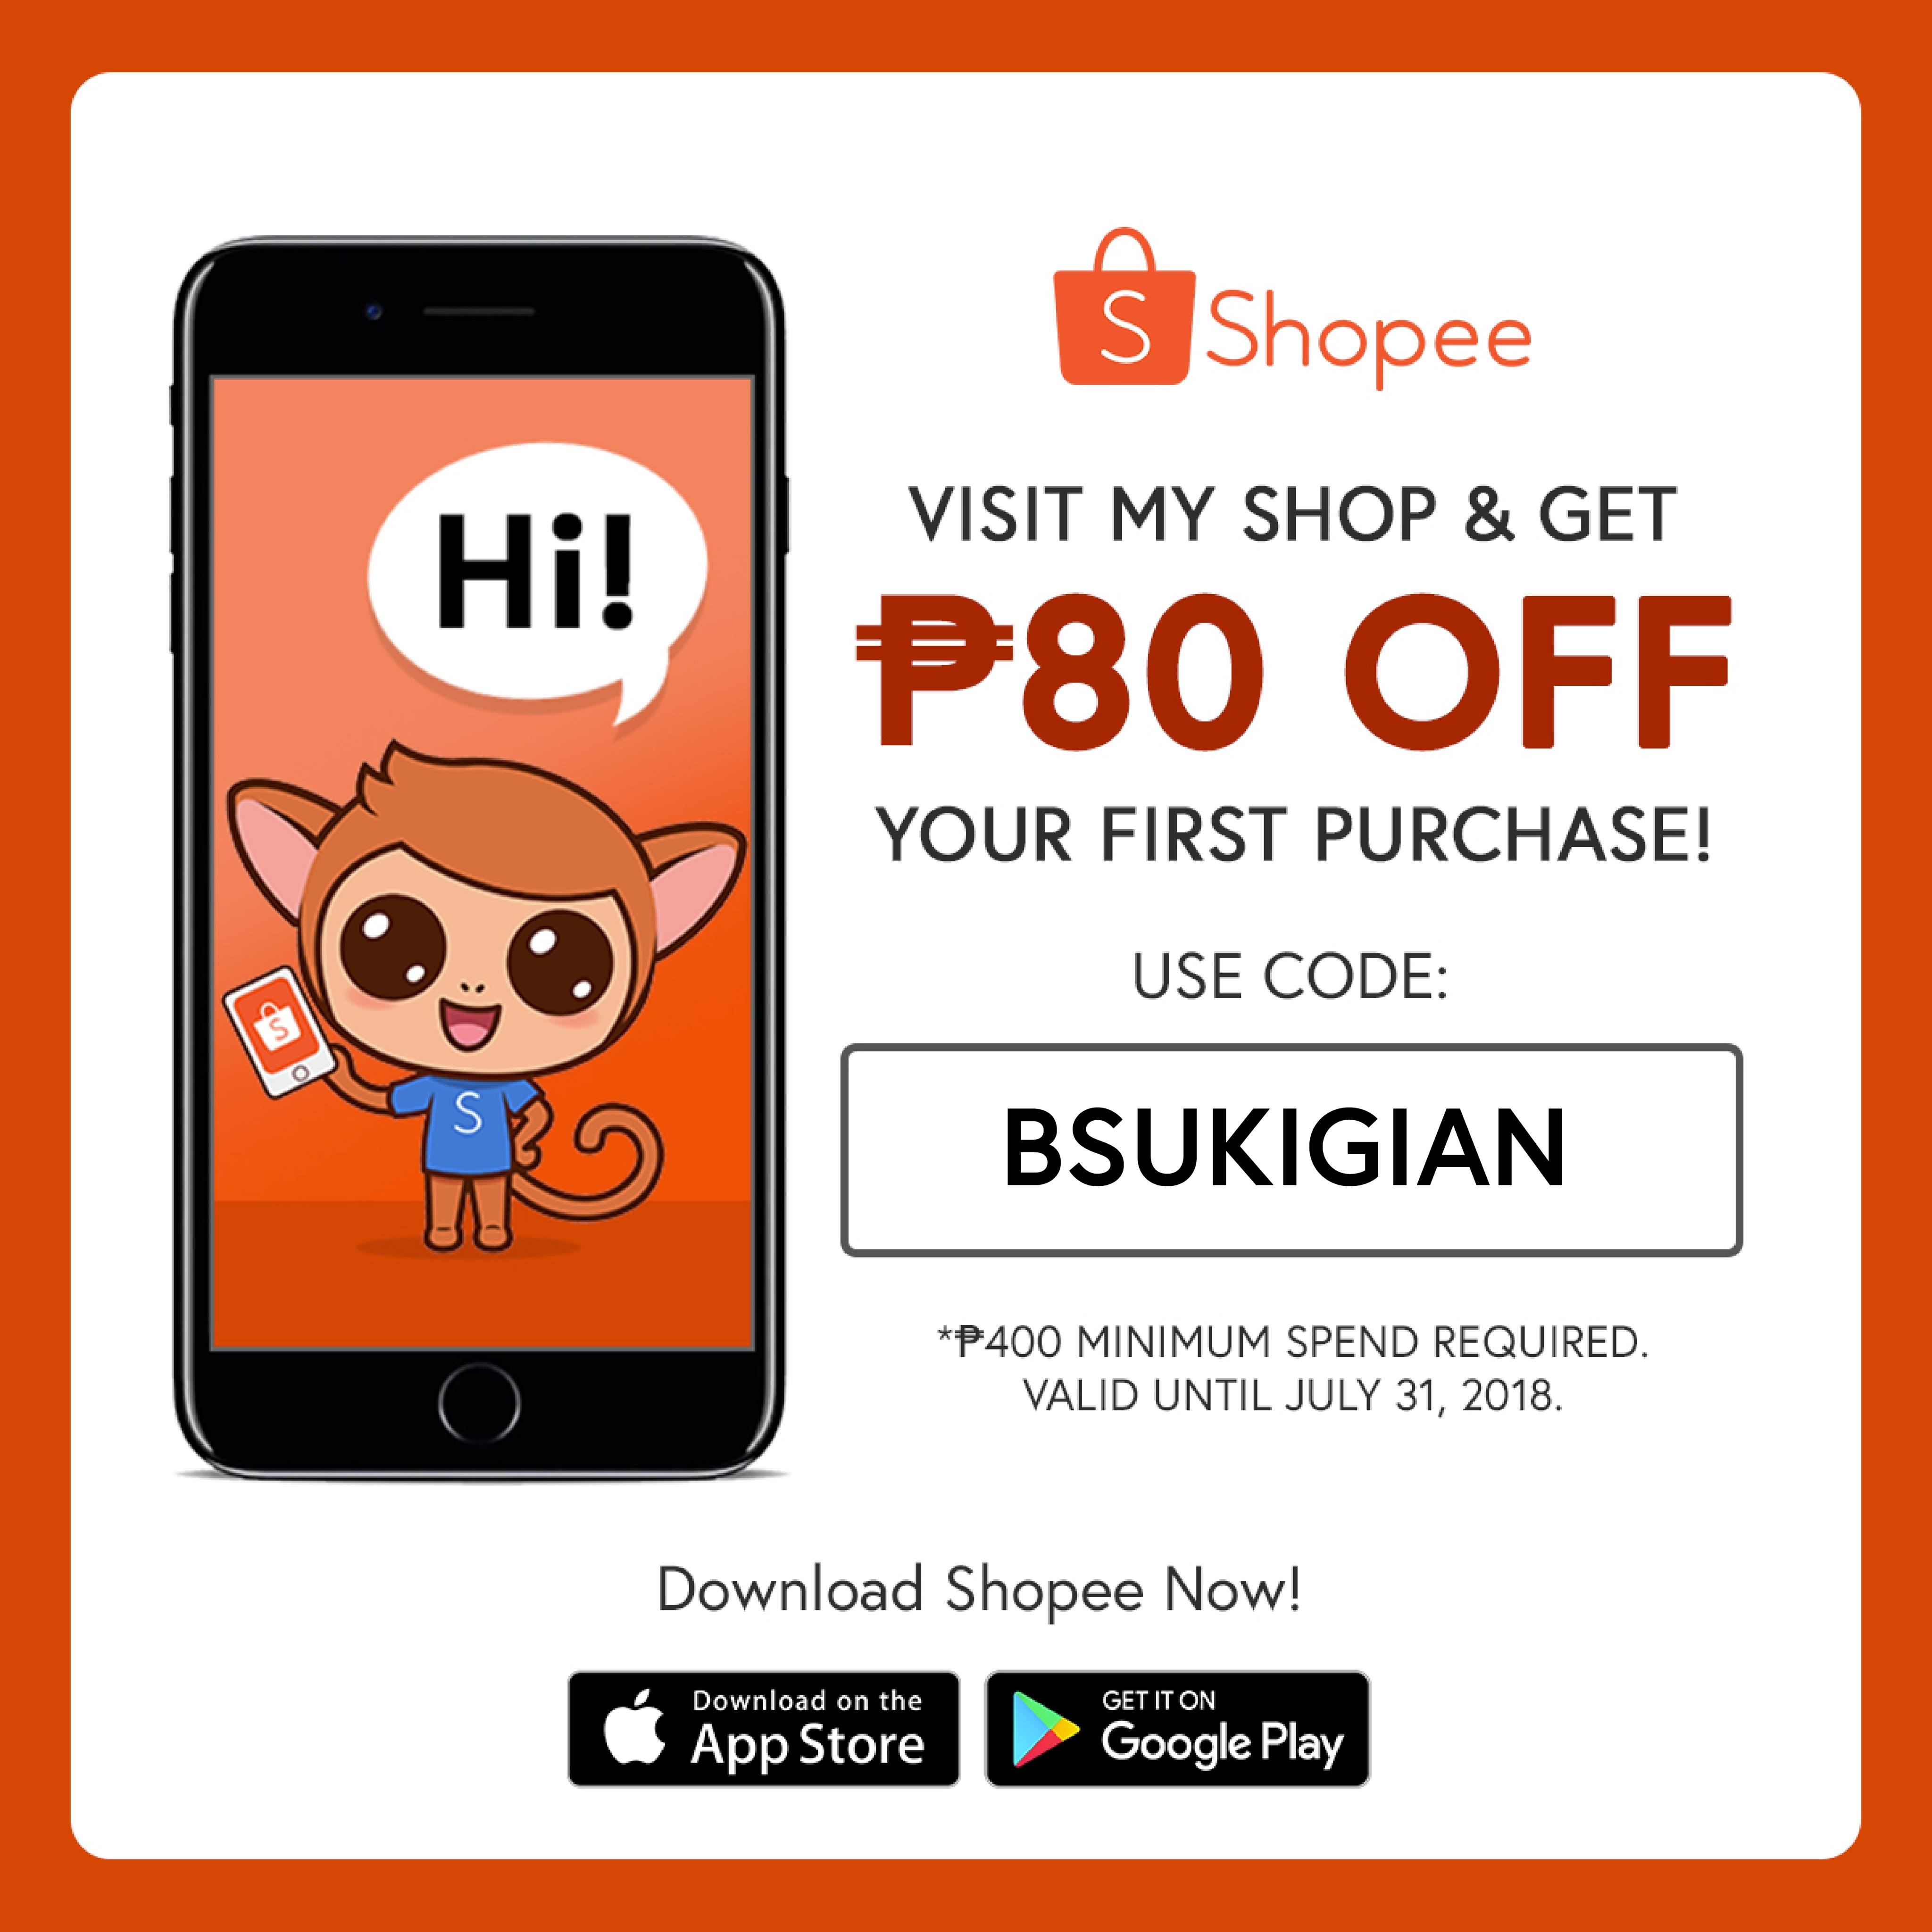 Shopee, 10 Things I want to buy at Shopee RIGHT NOW, Gadget Pilipinas, Gadget Pilipinas